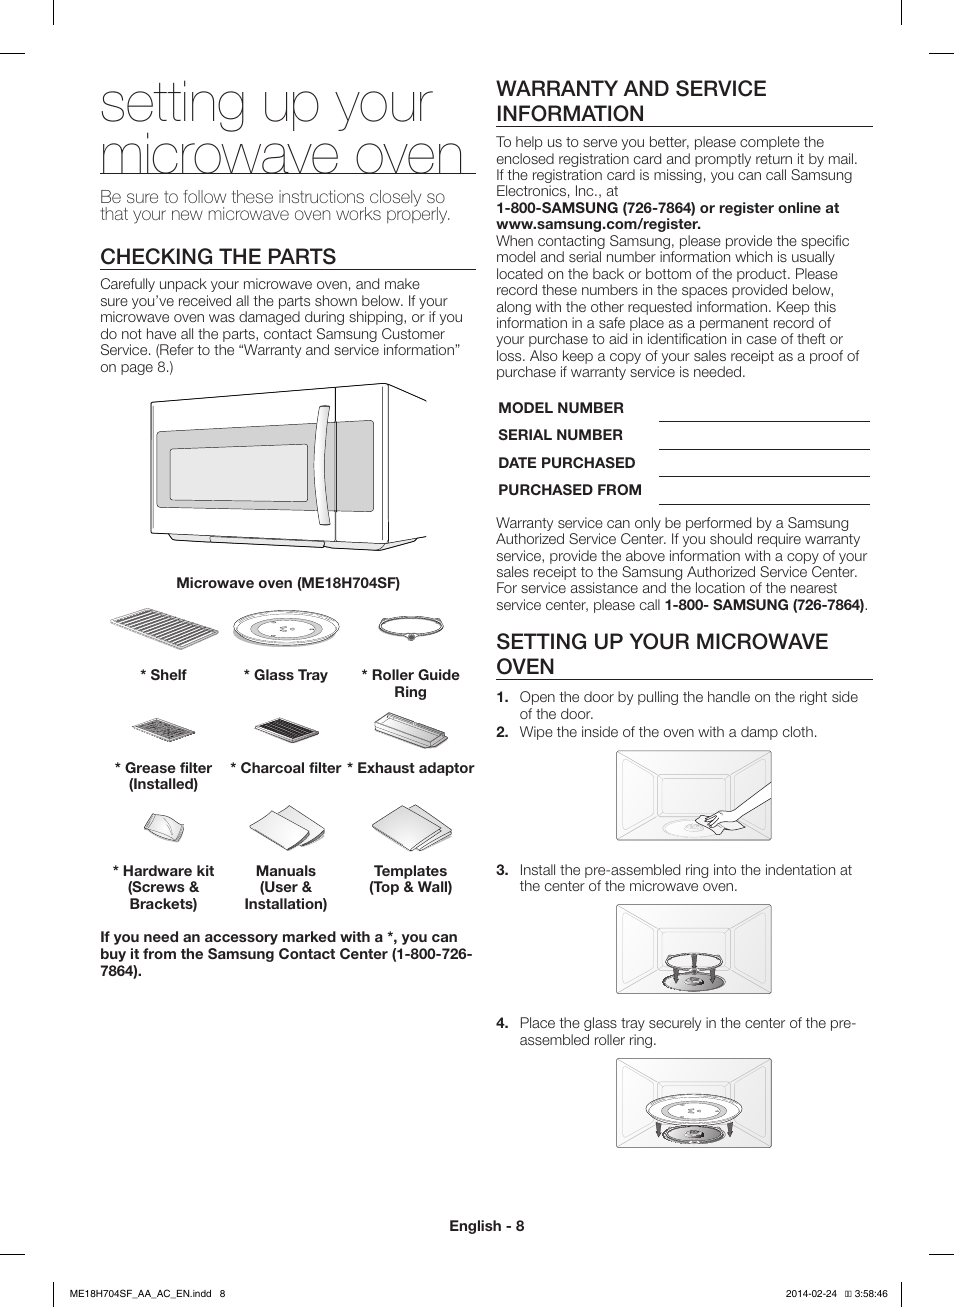 Setting Up Your Microwave Oven Checking The Parts Warranty And Service Information Samsung Me18h704sfb Aa Manuel D Utilisation Page 8 56